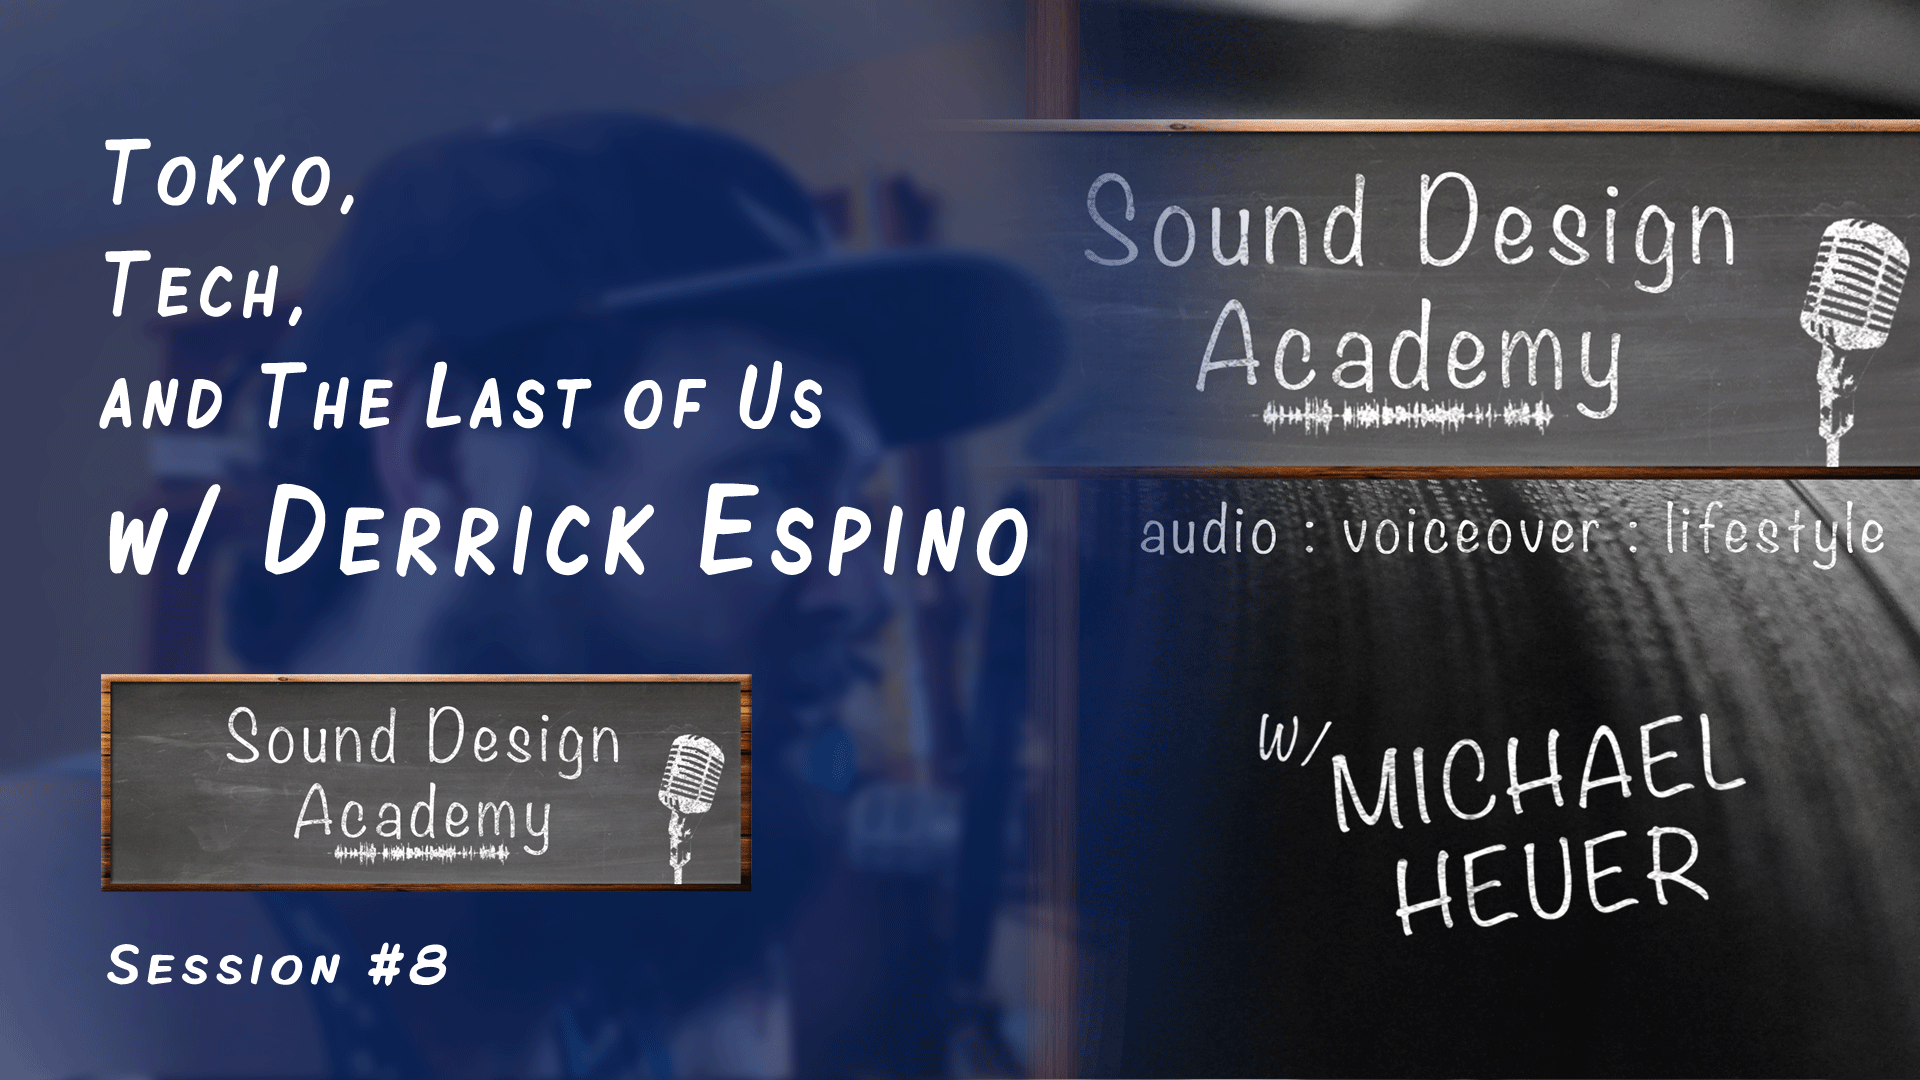 podcast session 8 derrick espino: tokyo, tech, and the last of us